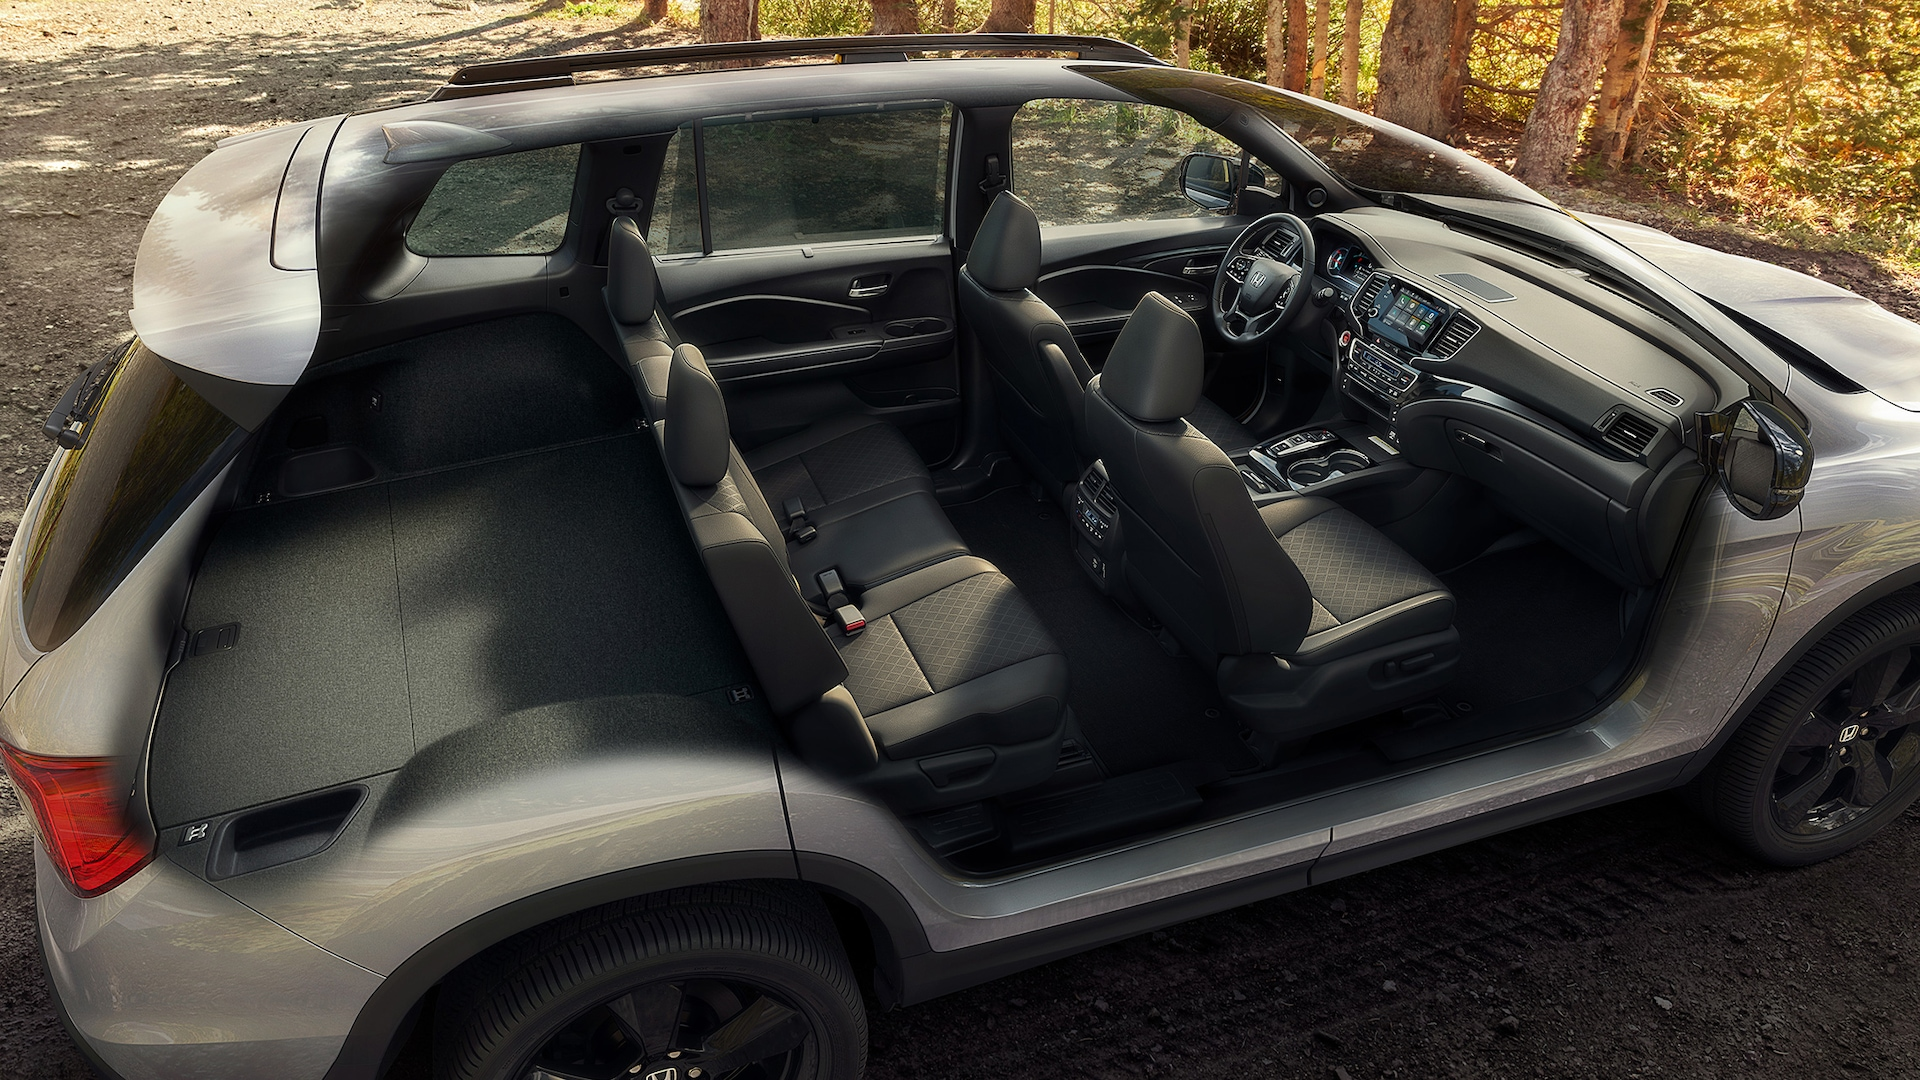 Full interior shot of the 2021 Honda Passport Elite with Black Leather displaying spacious interior and cargo capacity.